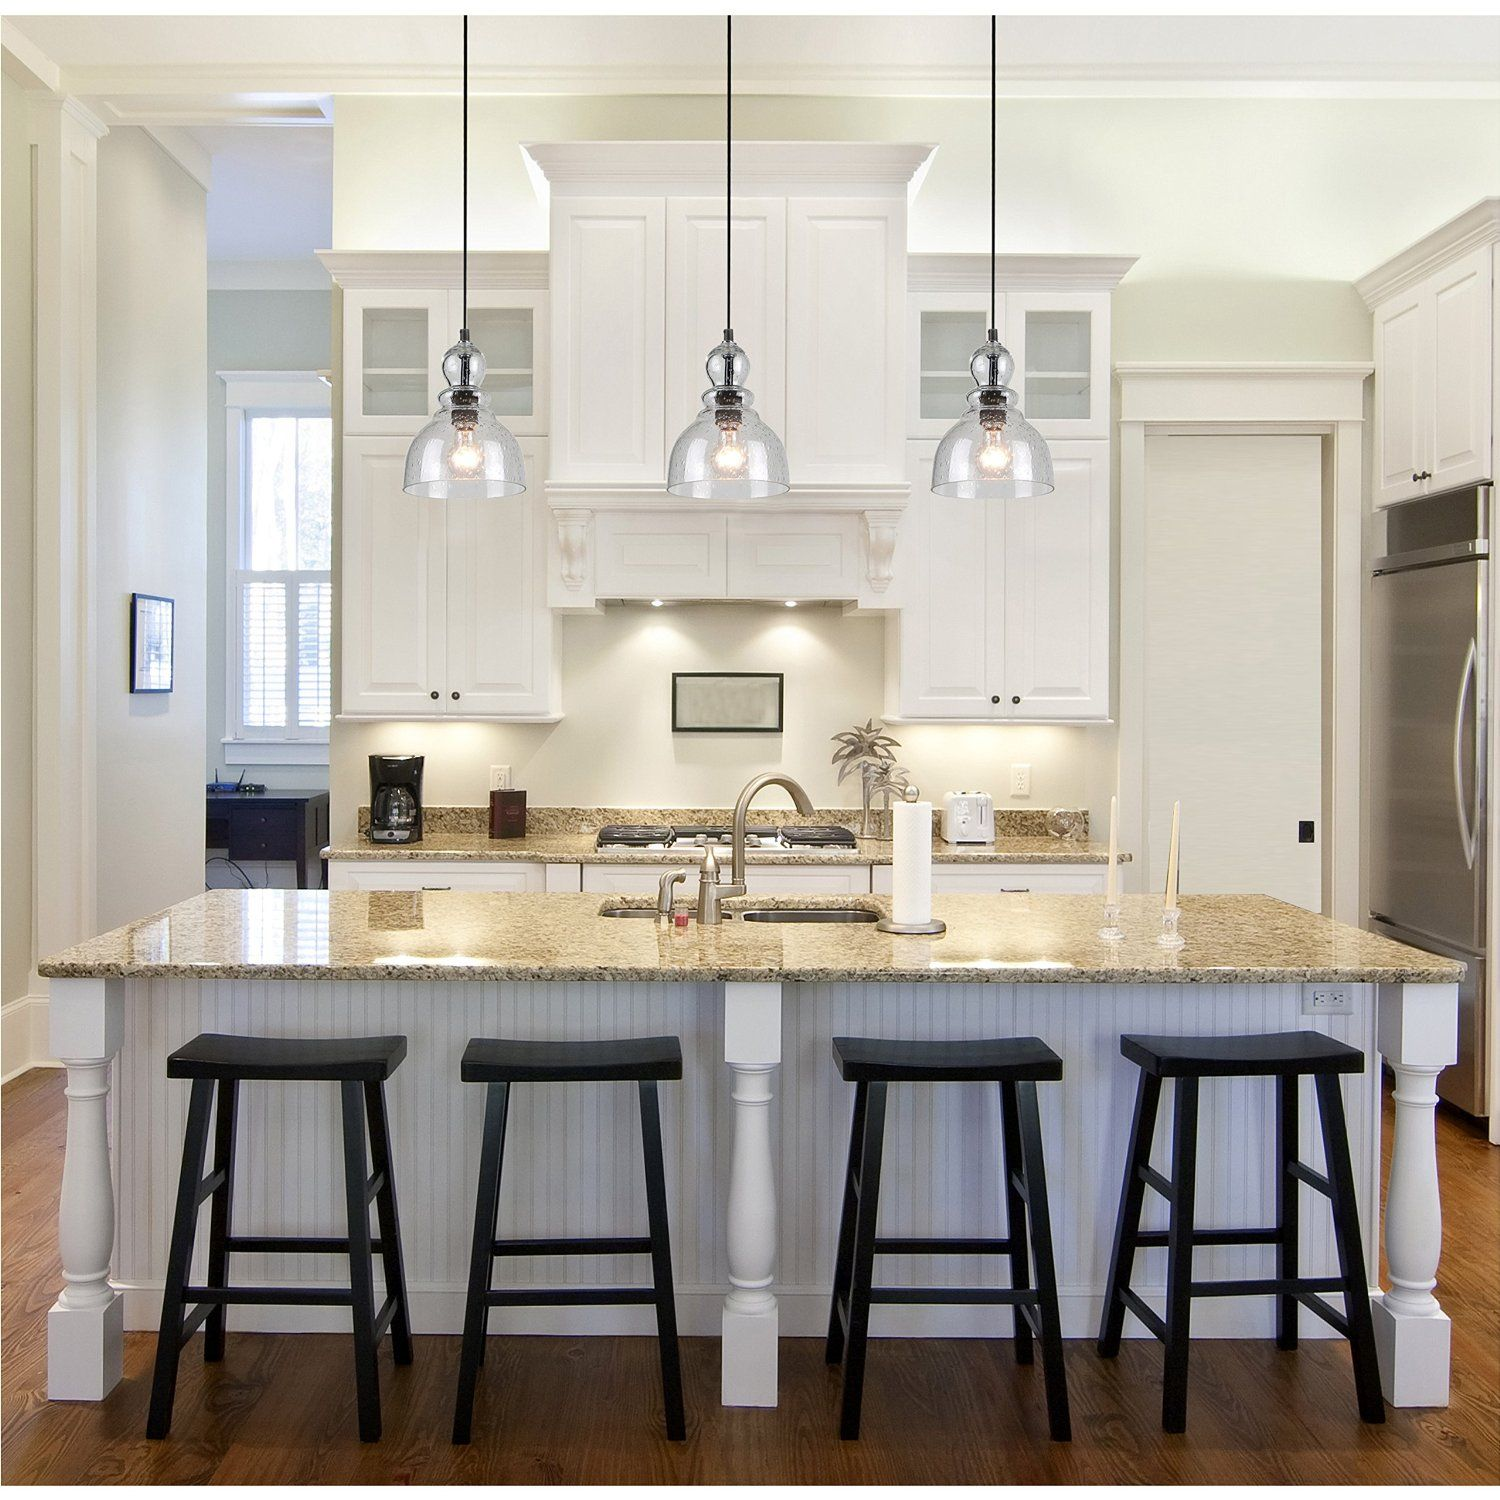 Oil Rubbed Bronze Kitchen Island Lighting Samsung Appliance Package Amazon Westinghouse 6100800 Industrial One Light